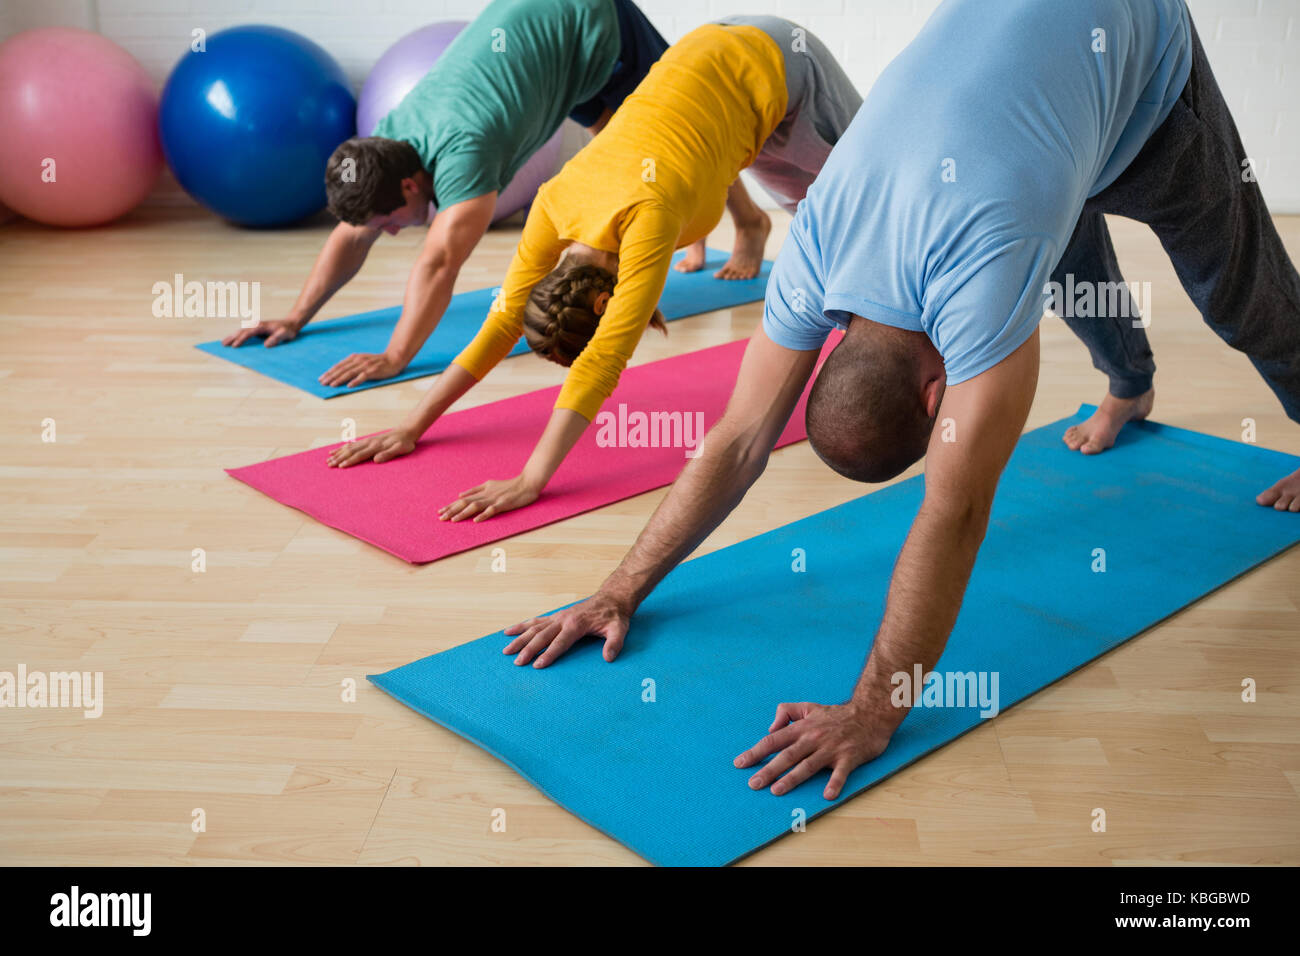 Male instructor guiding students in practicing downward facing dog pose at yoga studio - Stock Image